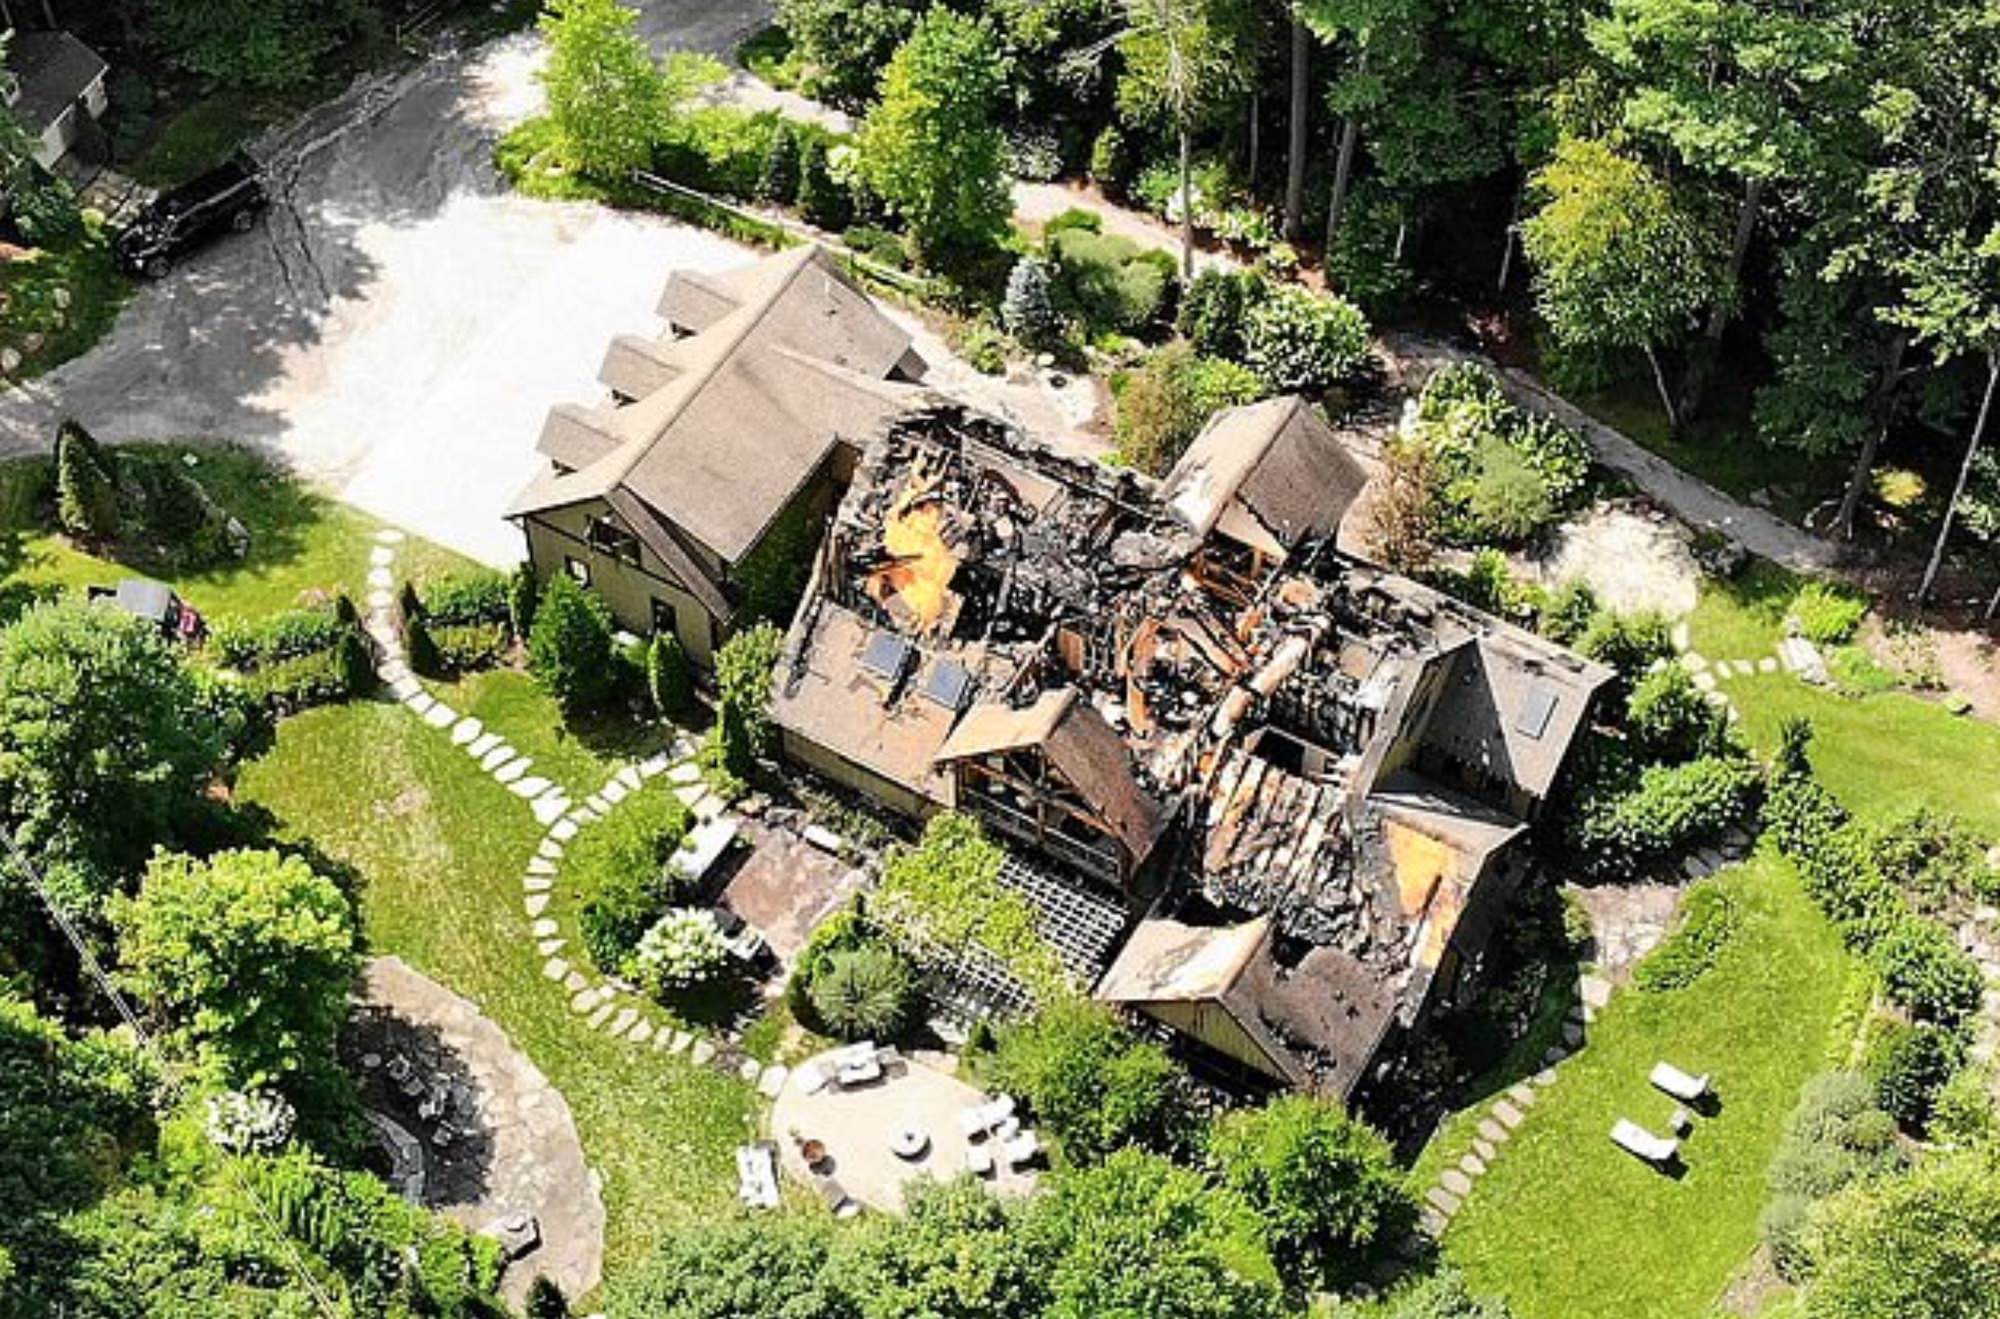 Damage to Rachel Ray's mansion shown in drone photos